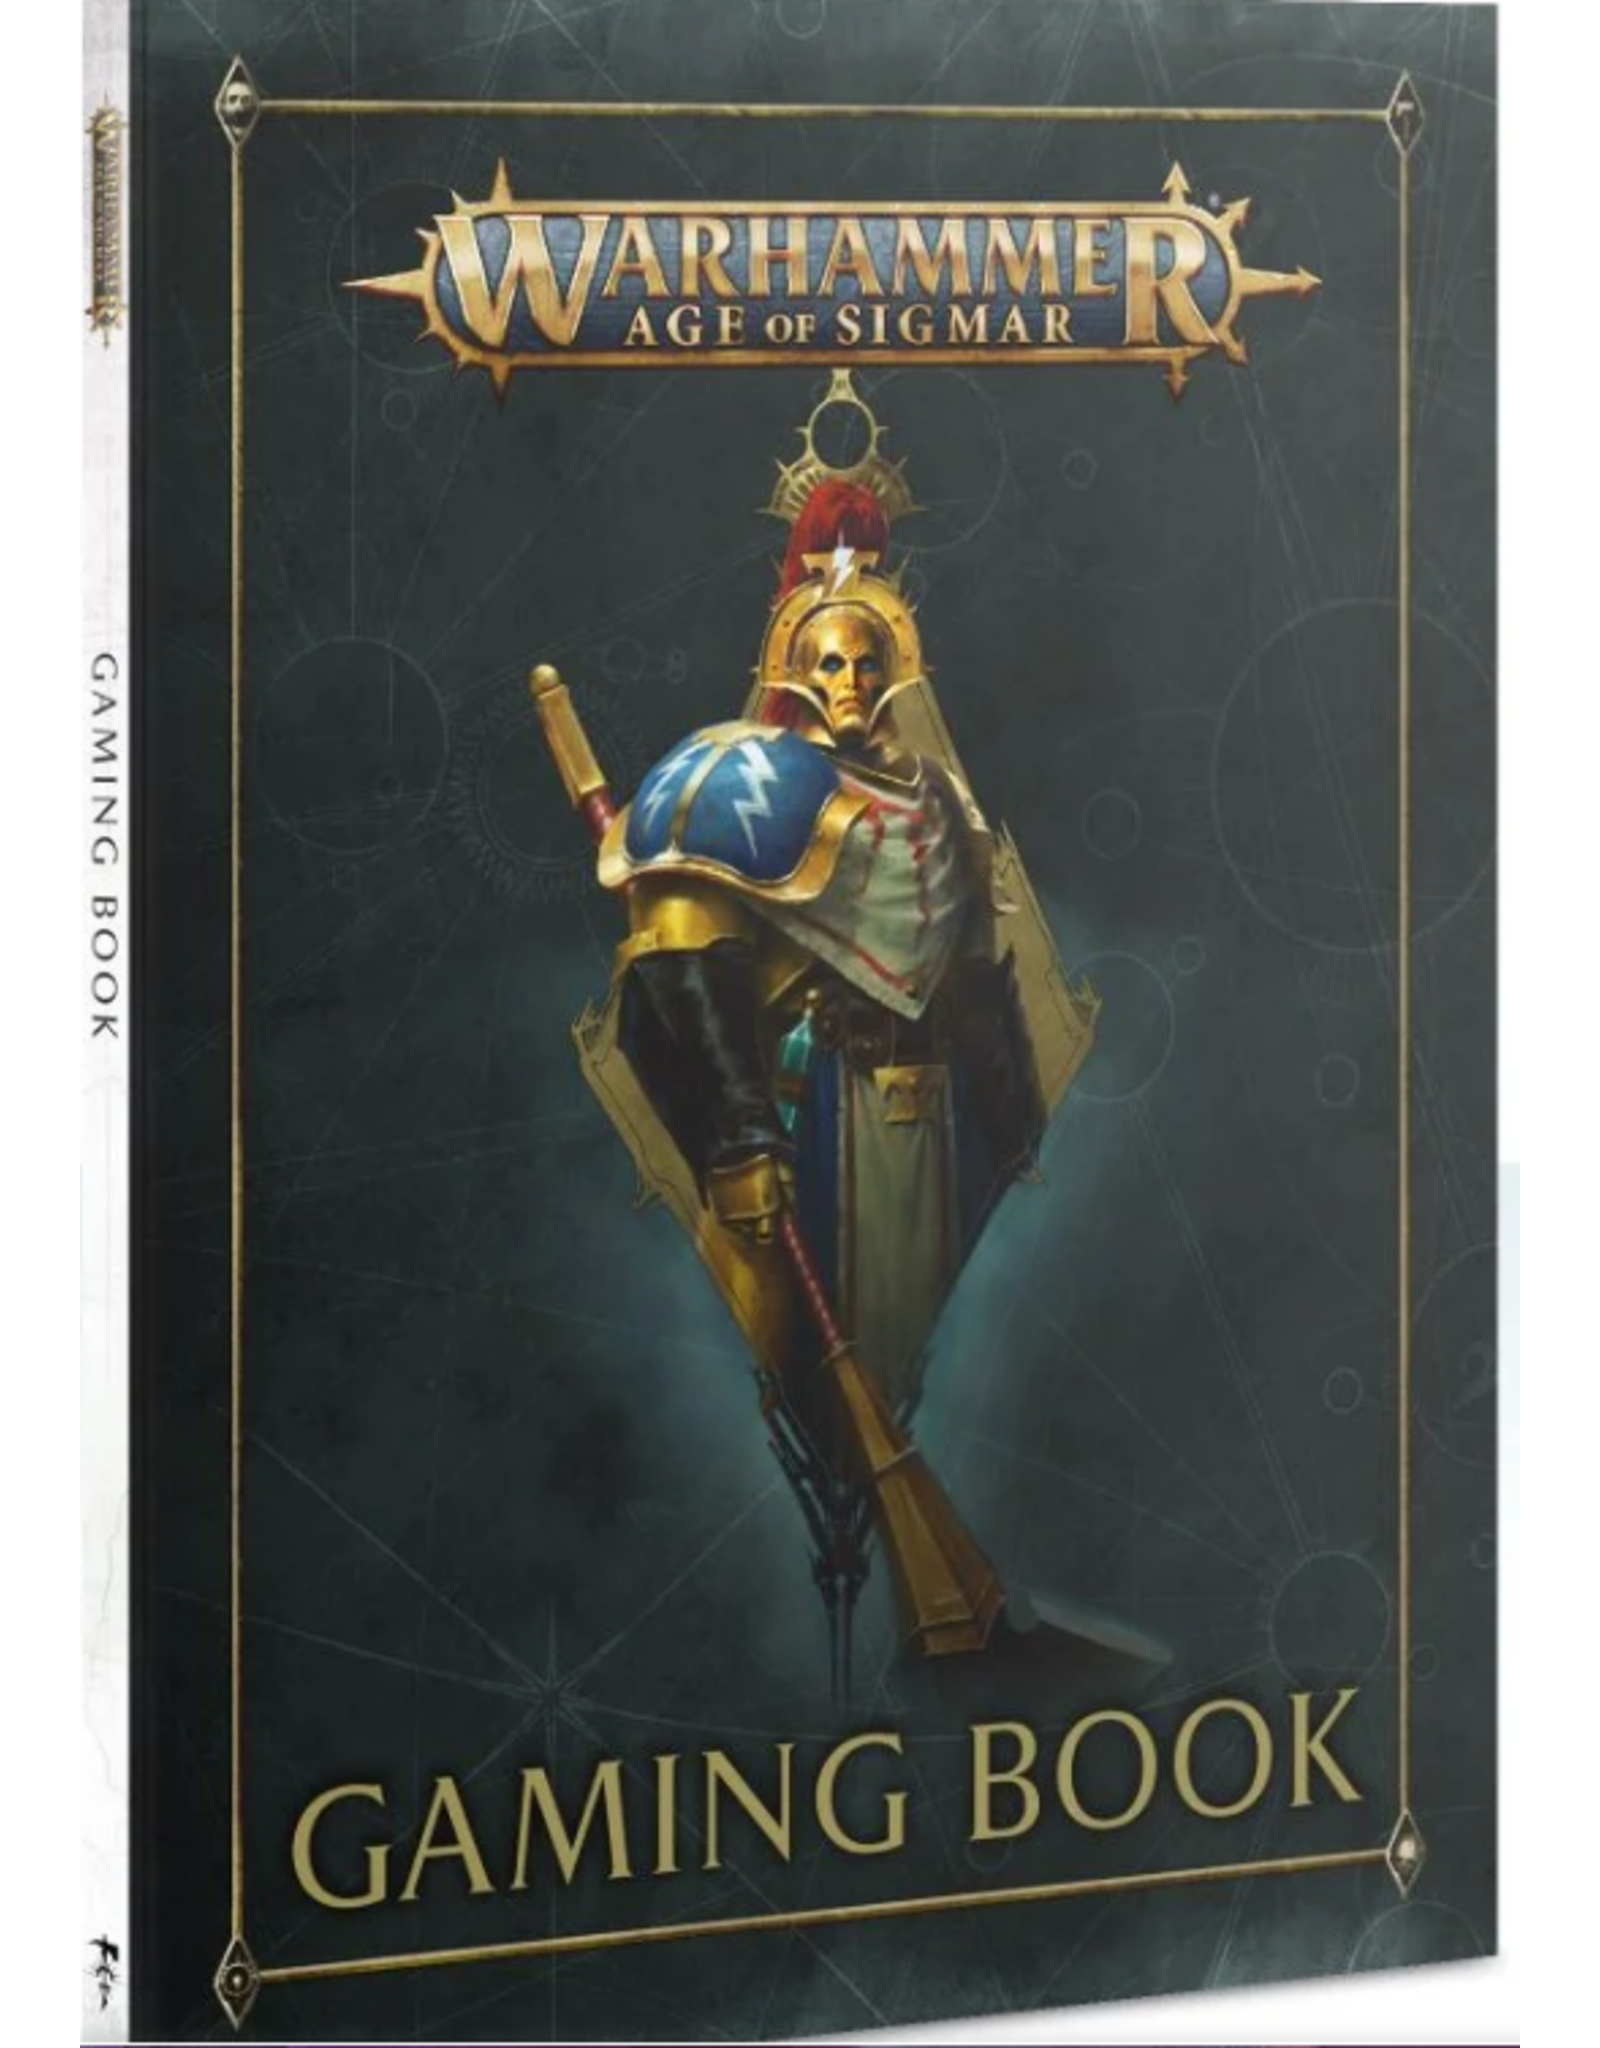 Games Workshop Age of Sigmar Gaming Book